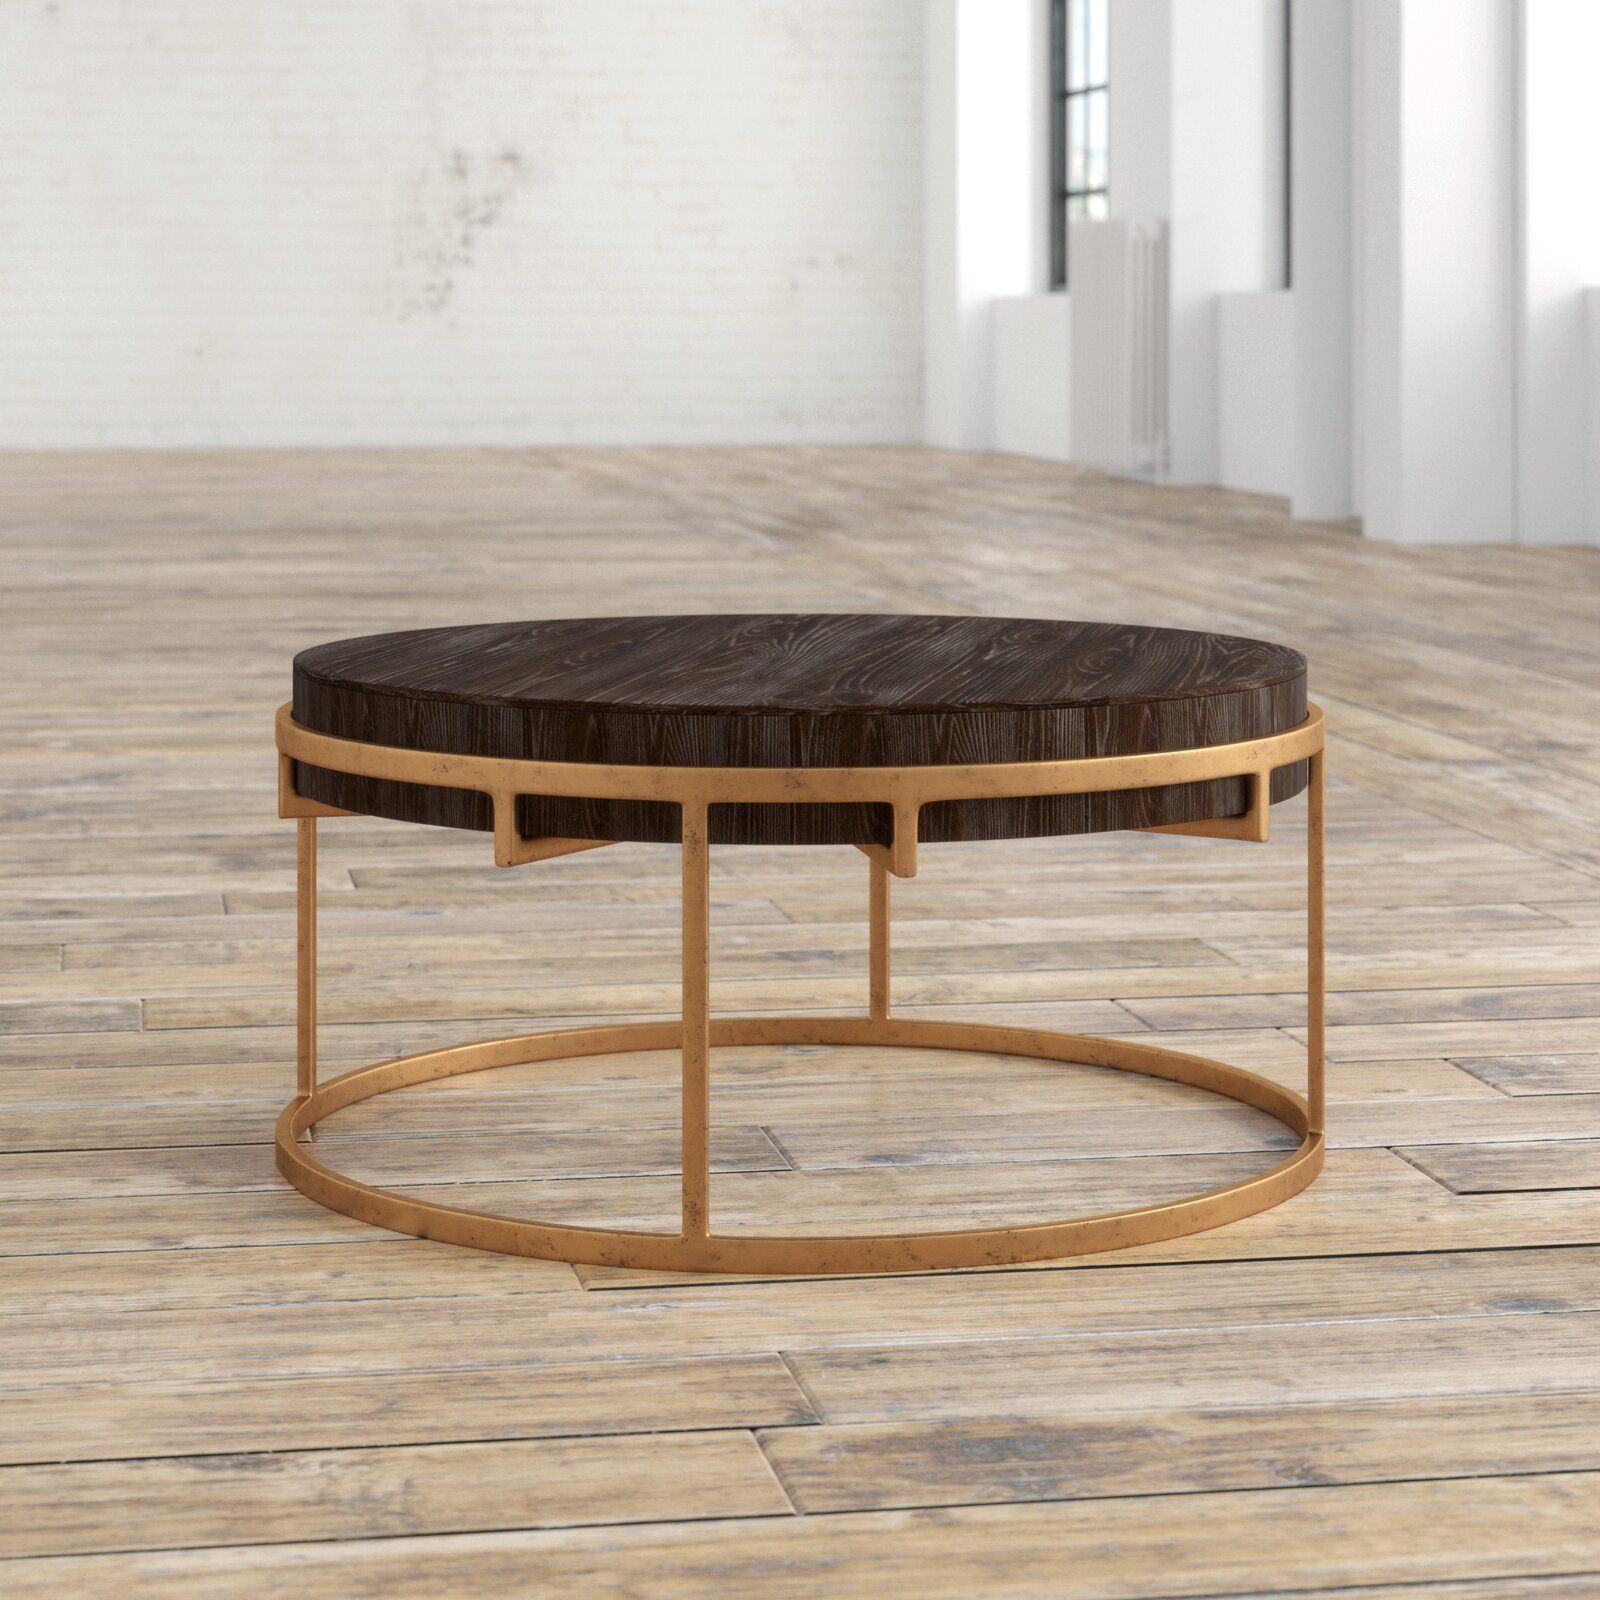 Carnesville Frame Coffee Table In 2021 Coffee Table Round Coffee Table Table [ 1600 x 1600 Pixel ]